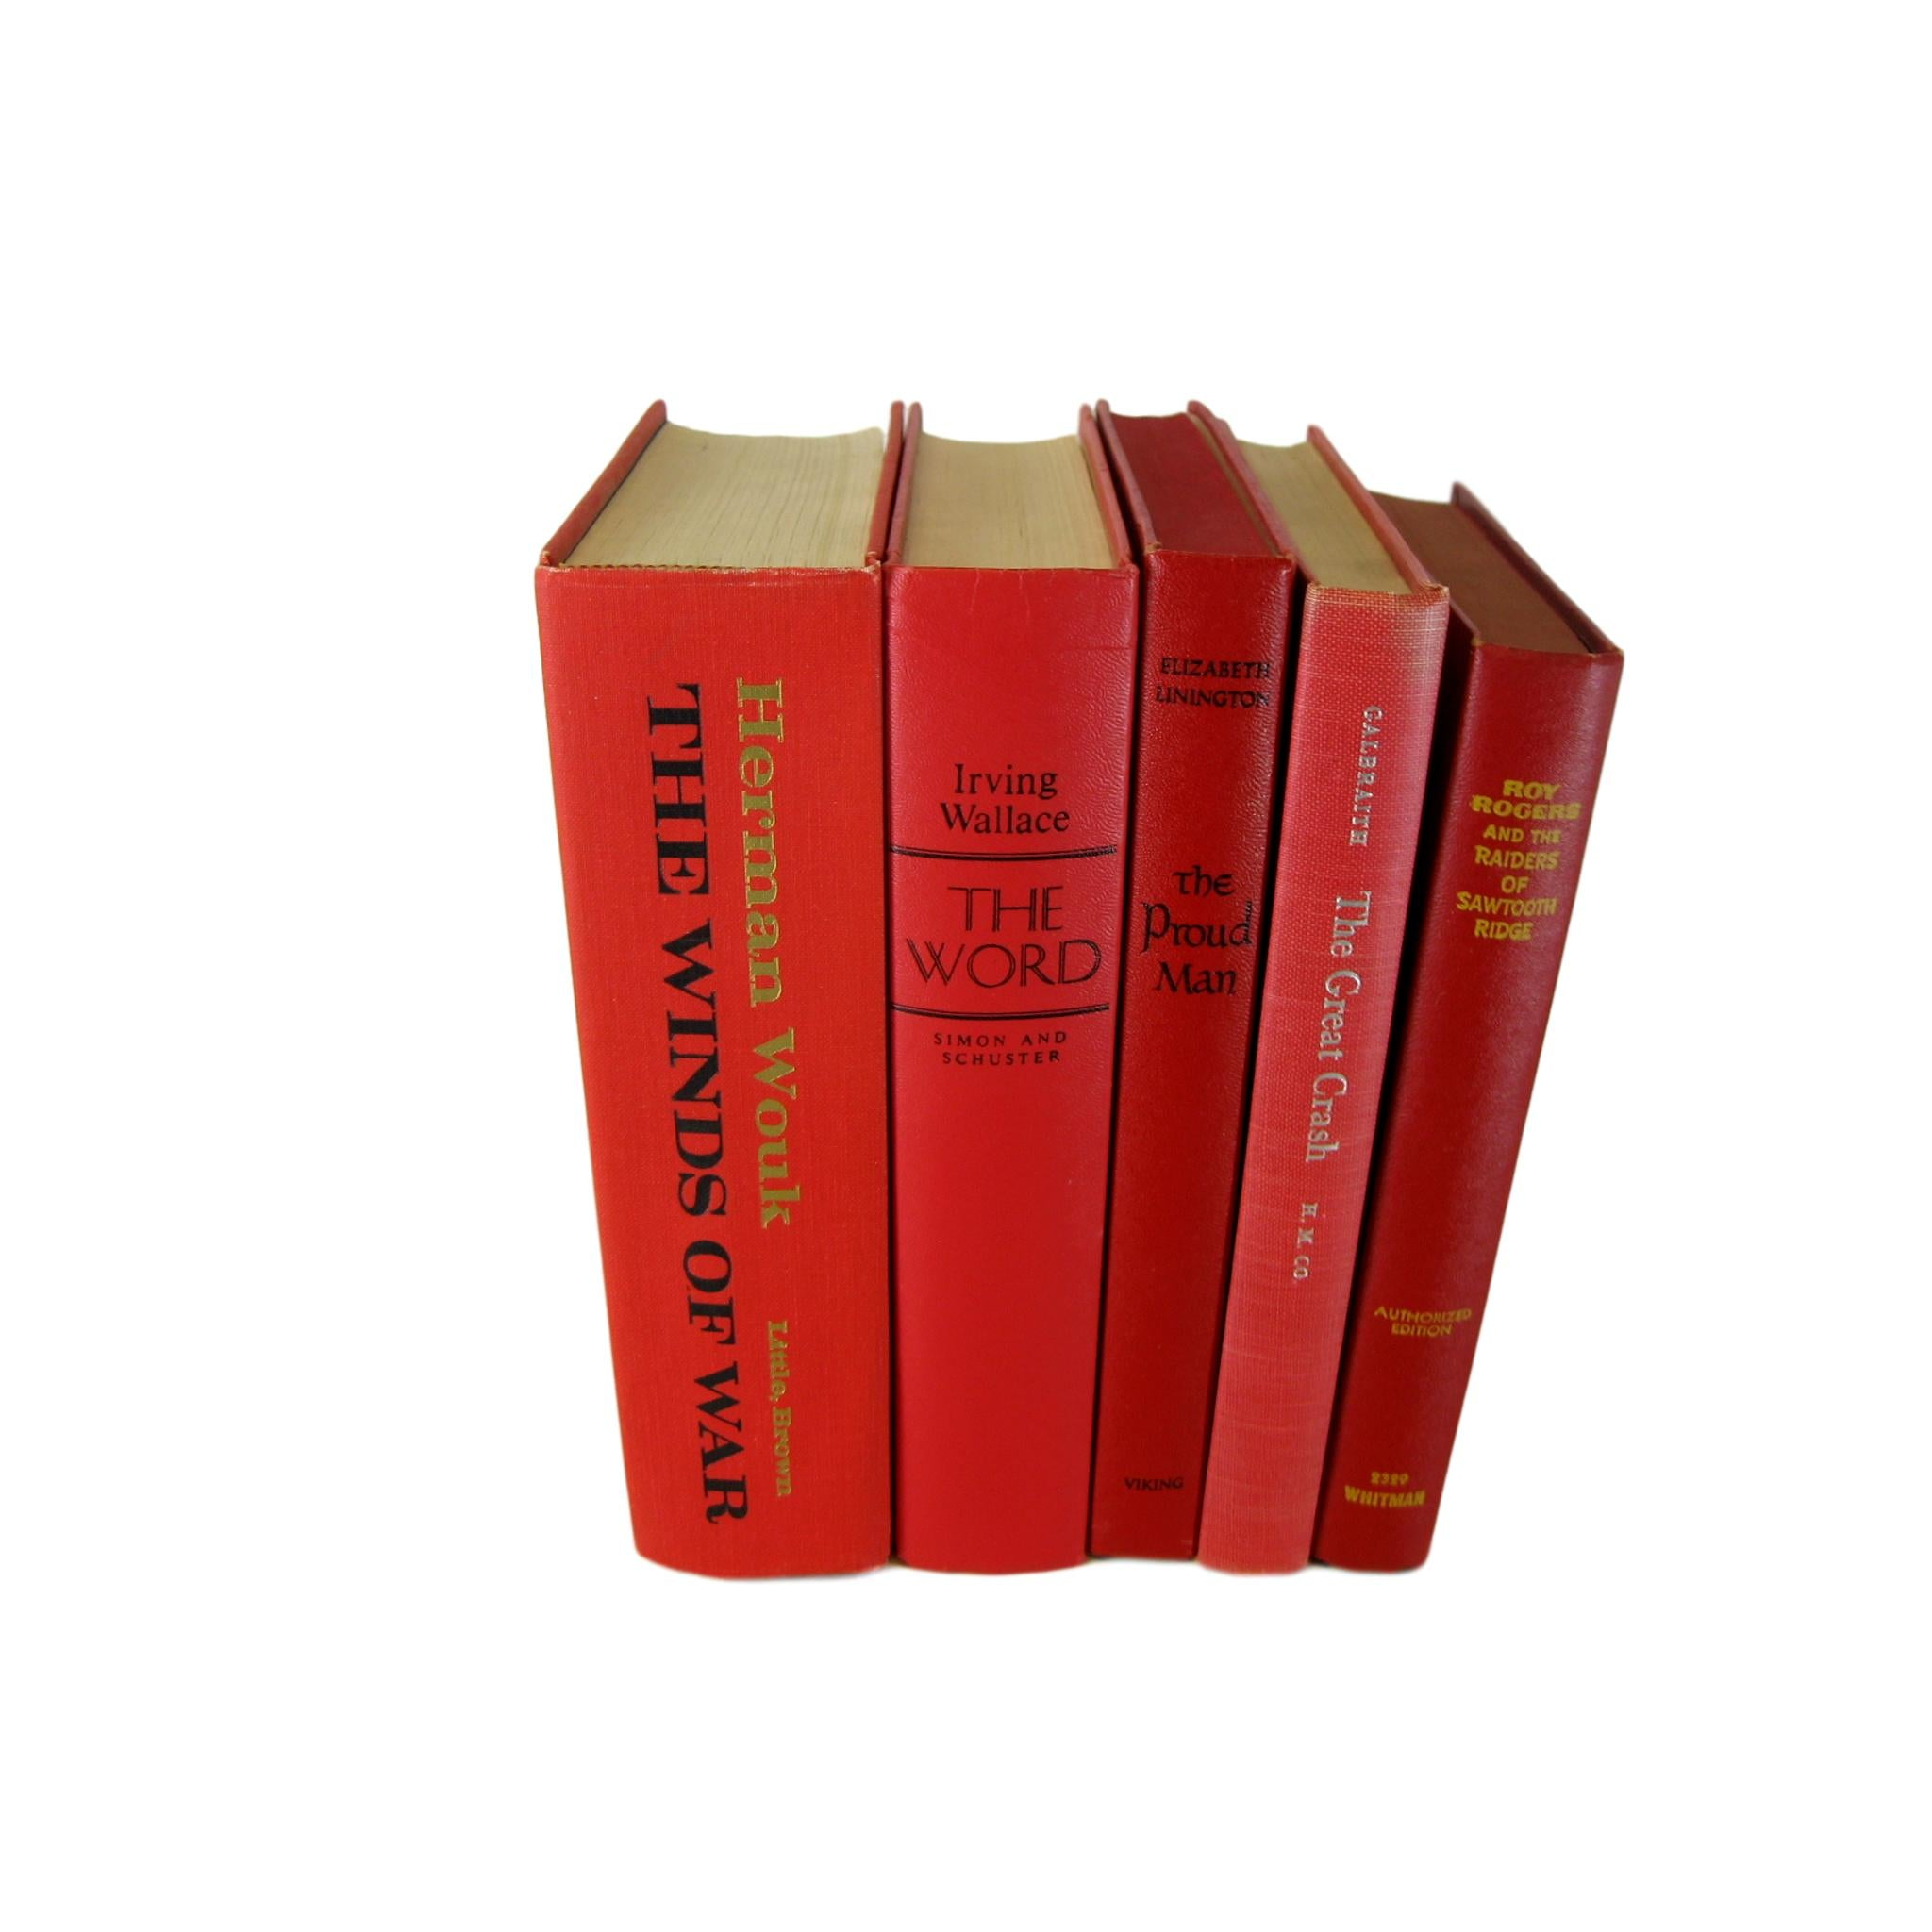 Decorative Books in Shades of Red, S/5 - Decades of Vintage